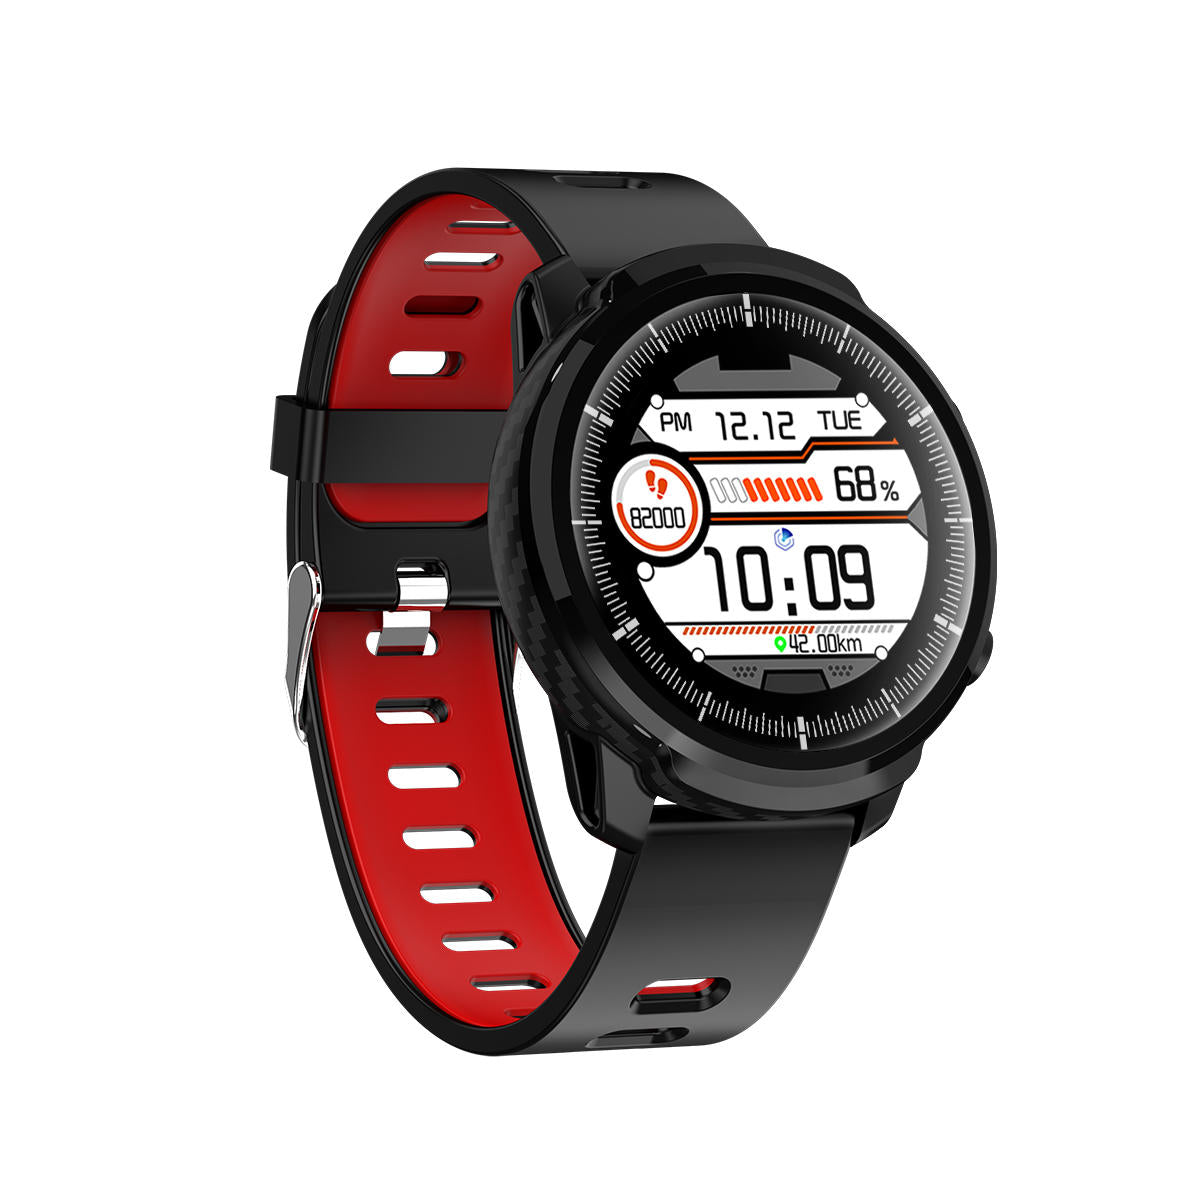 Best Blood Pressure Watch, Heart Rate and Blood Pressure Watch, Oxygen Monitor Watch, Weather Display Full Touch HD Screen IP67 Waterproof Smart Watch